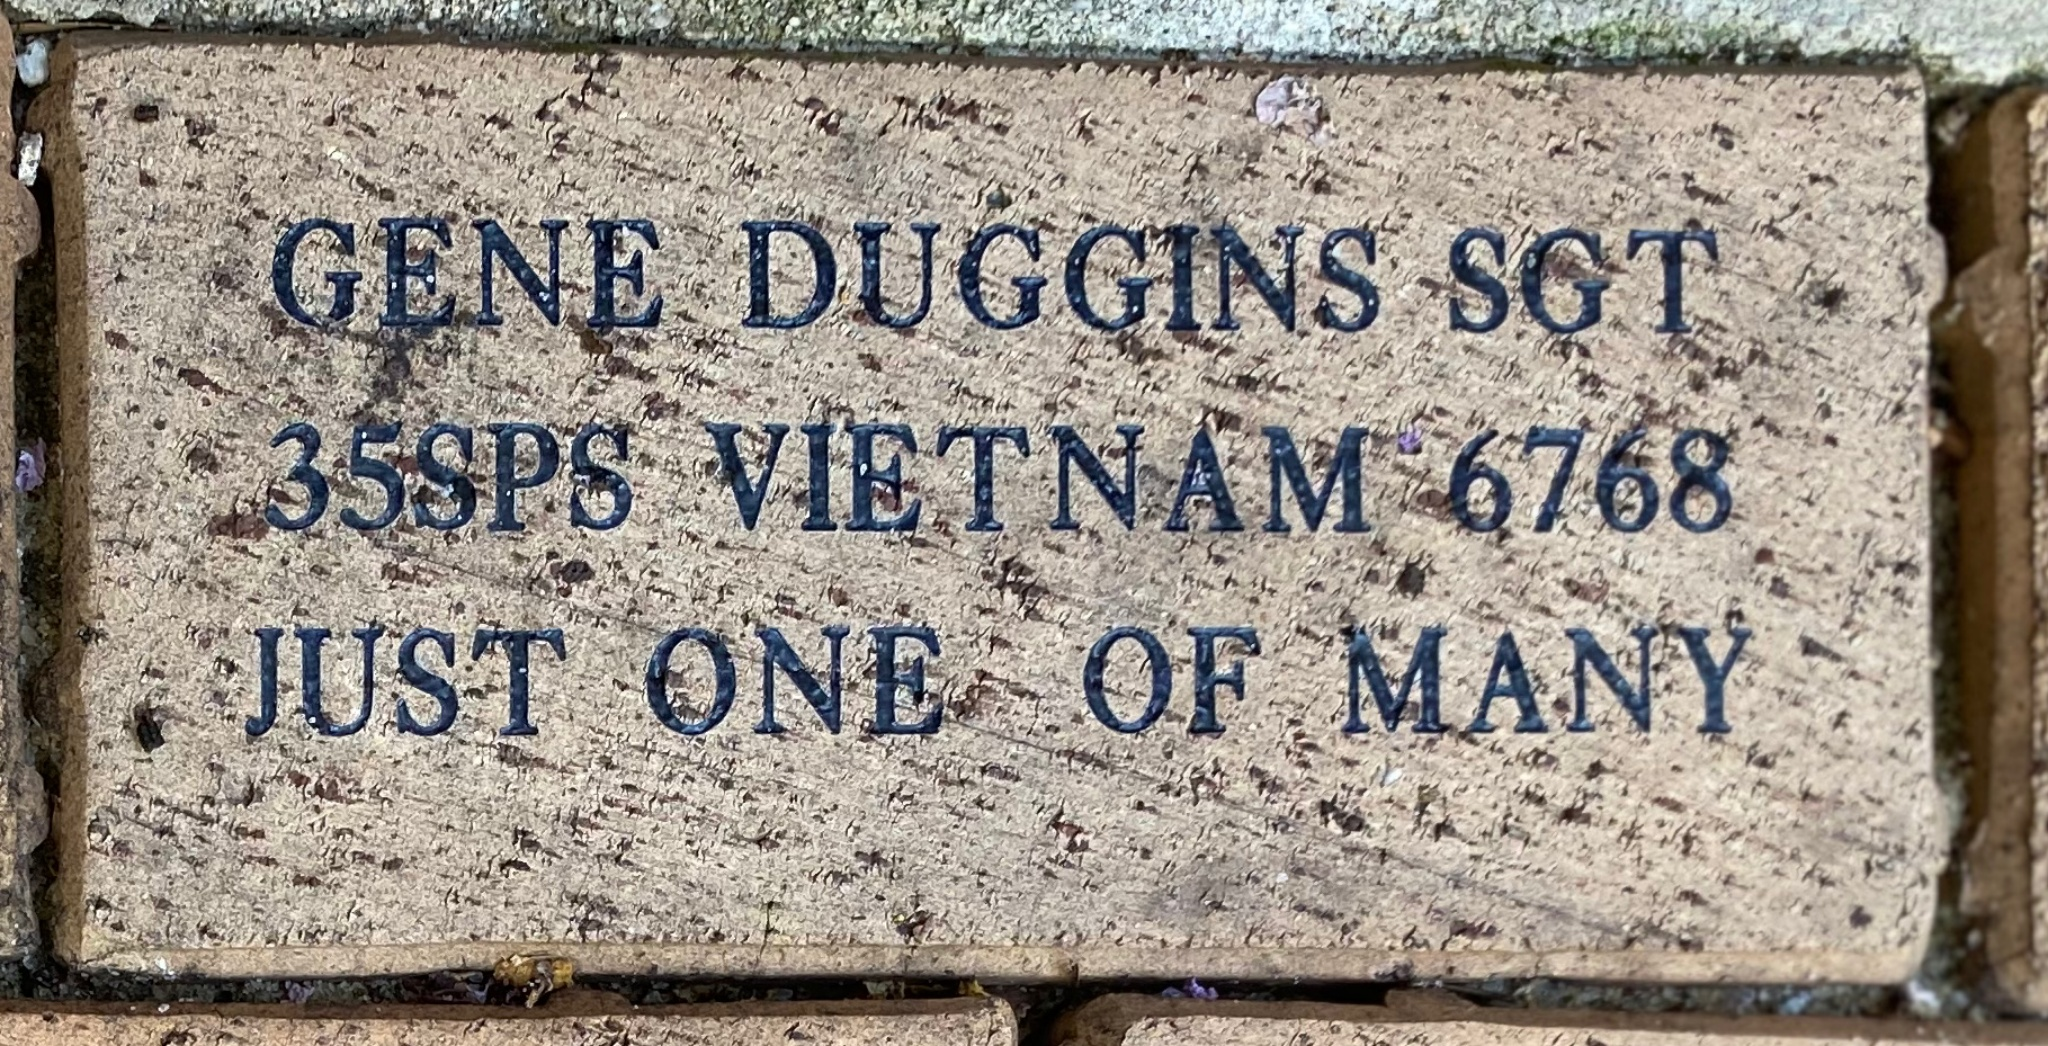 GENE DUGGINS SGT 35SPS VIETNAM 67 68 JUST ONE OF MANY